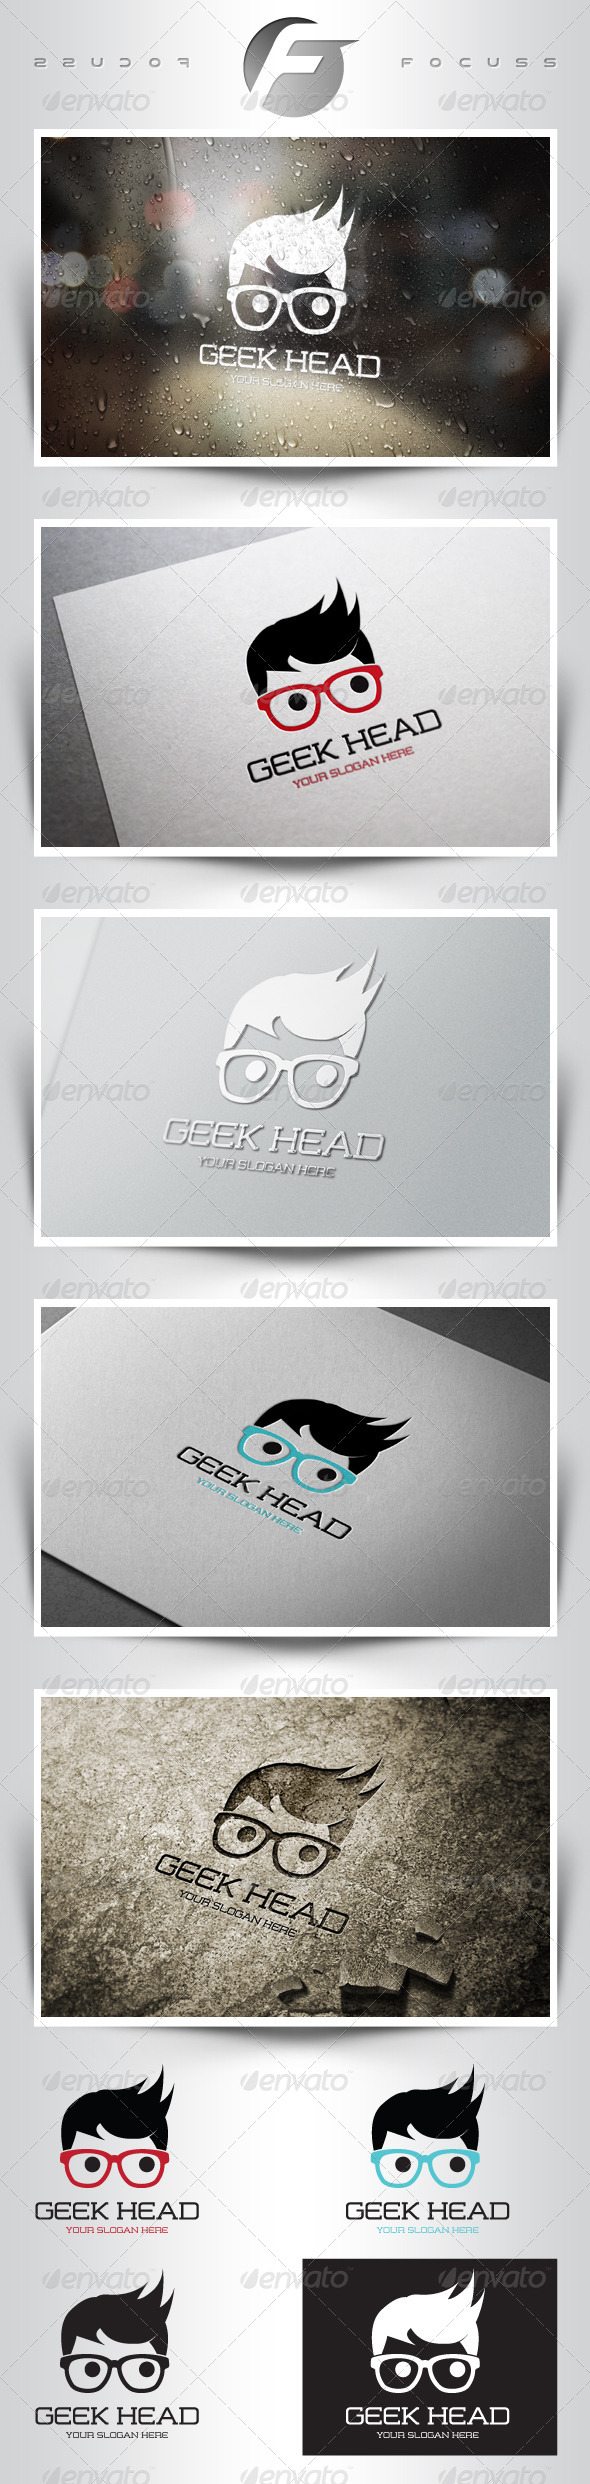 GraphicRiver Geek Head 6508110